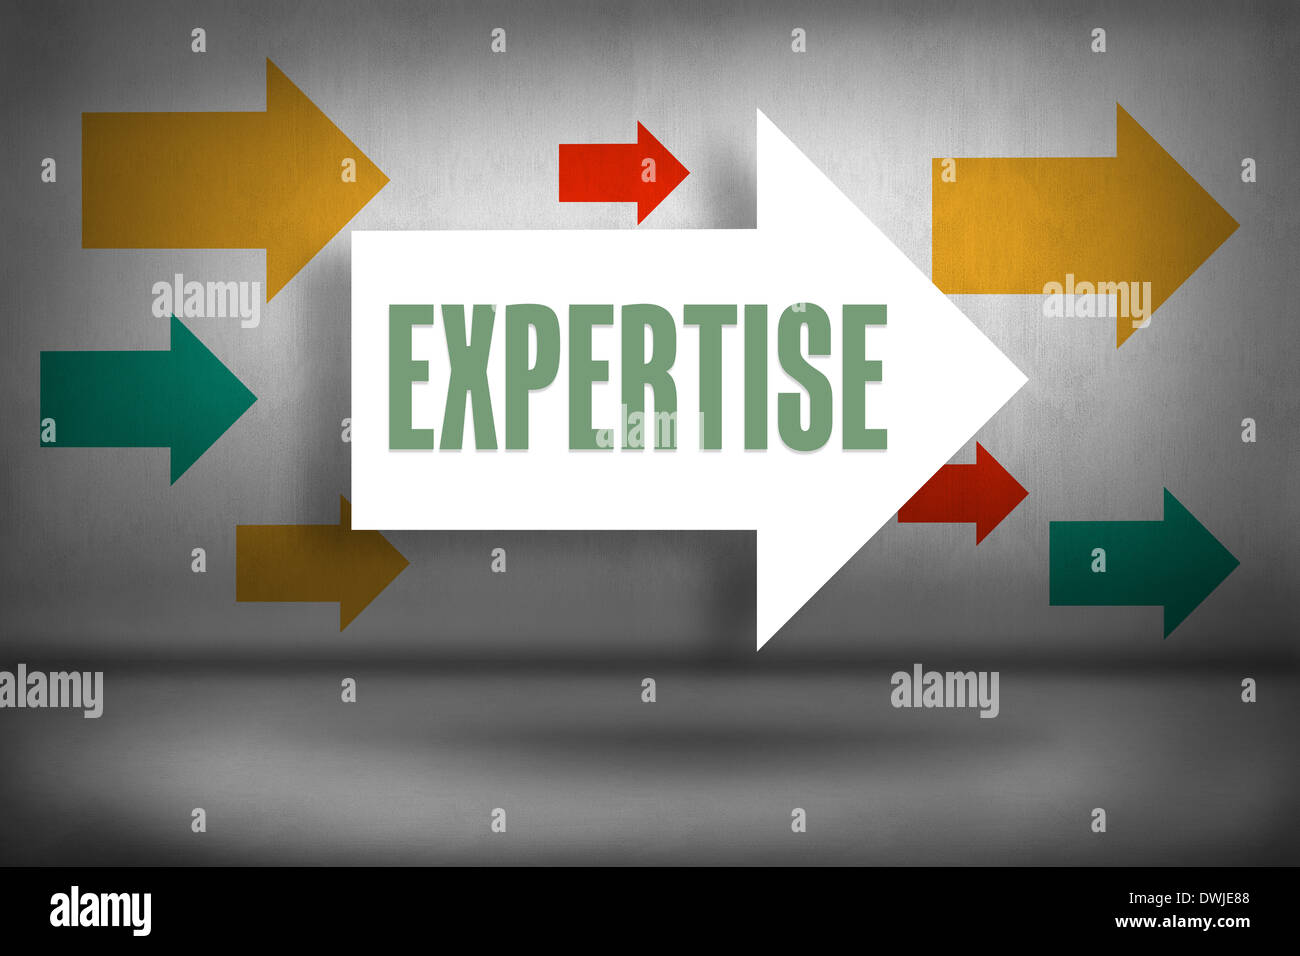 Expertise against arrows pointing - Stock Image